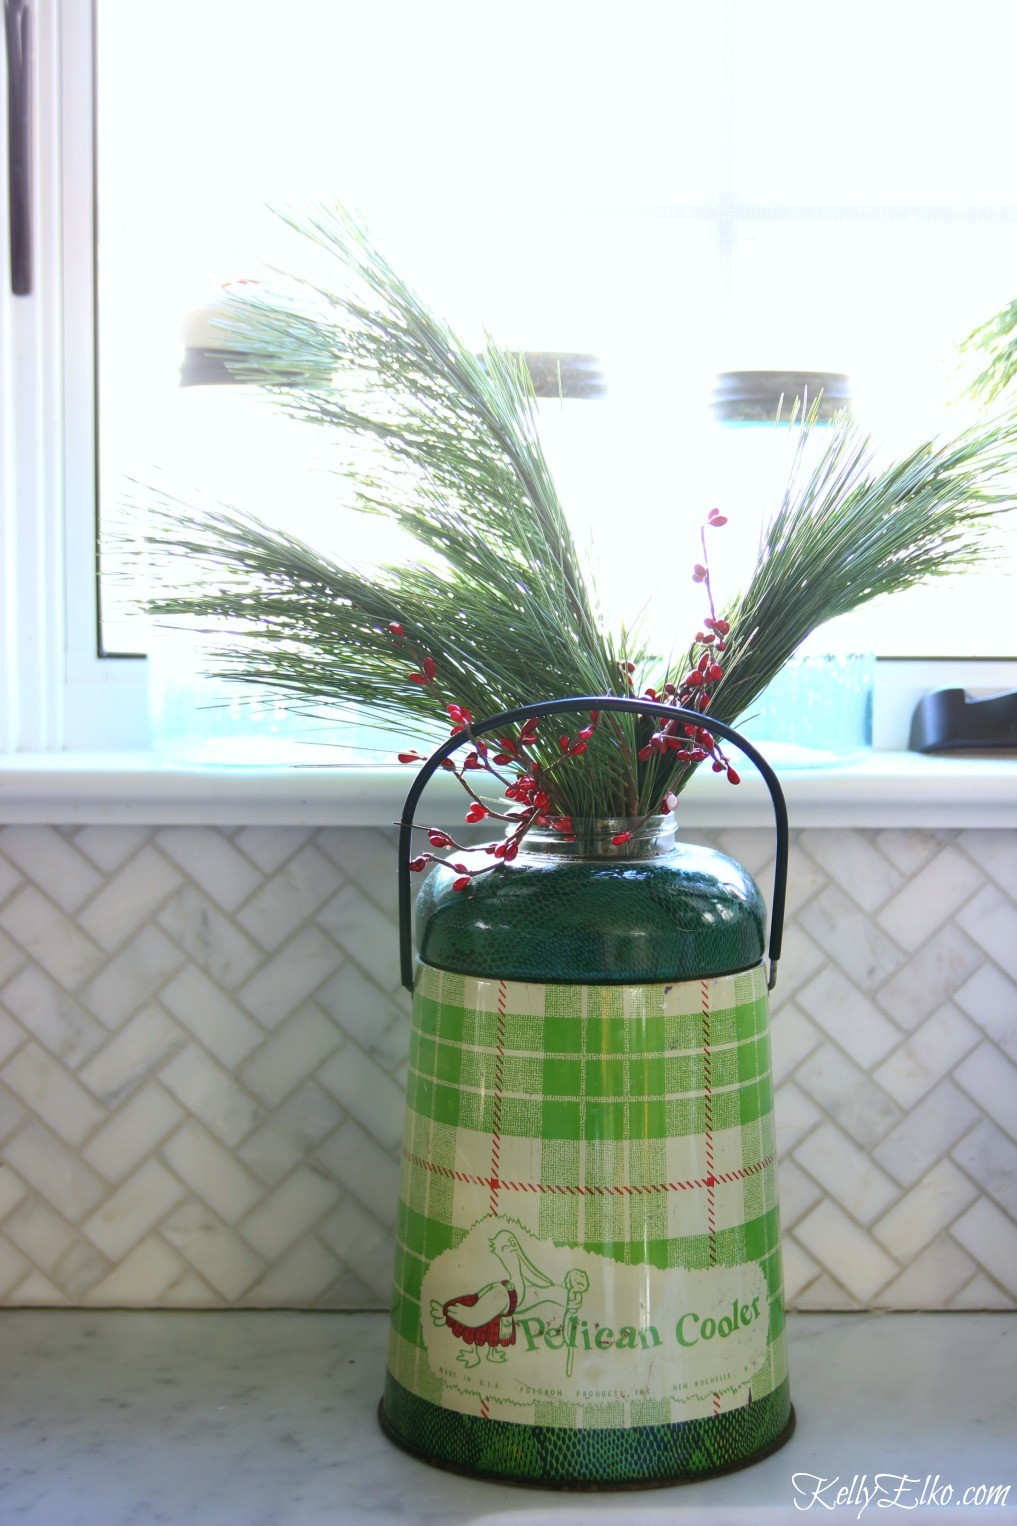 Vintage Pelican cooler makes a great Christmas planter kellyelko.com